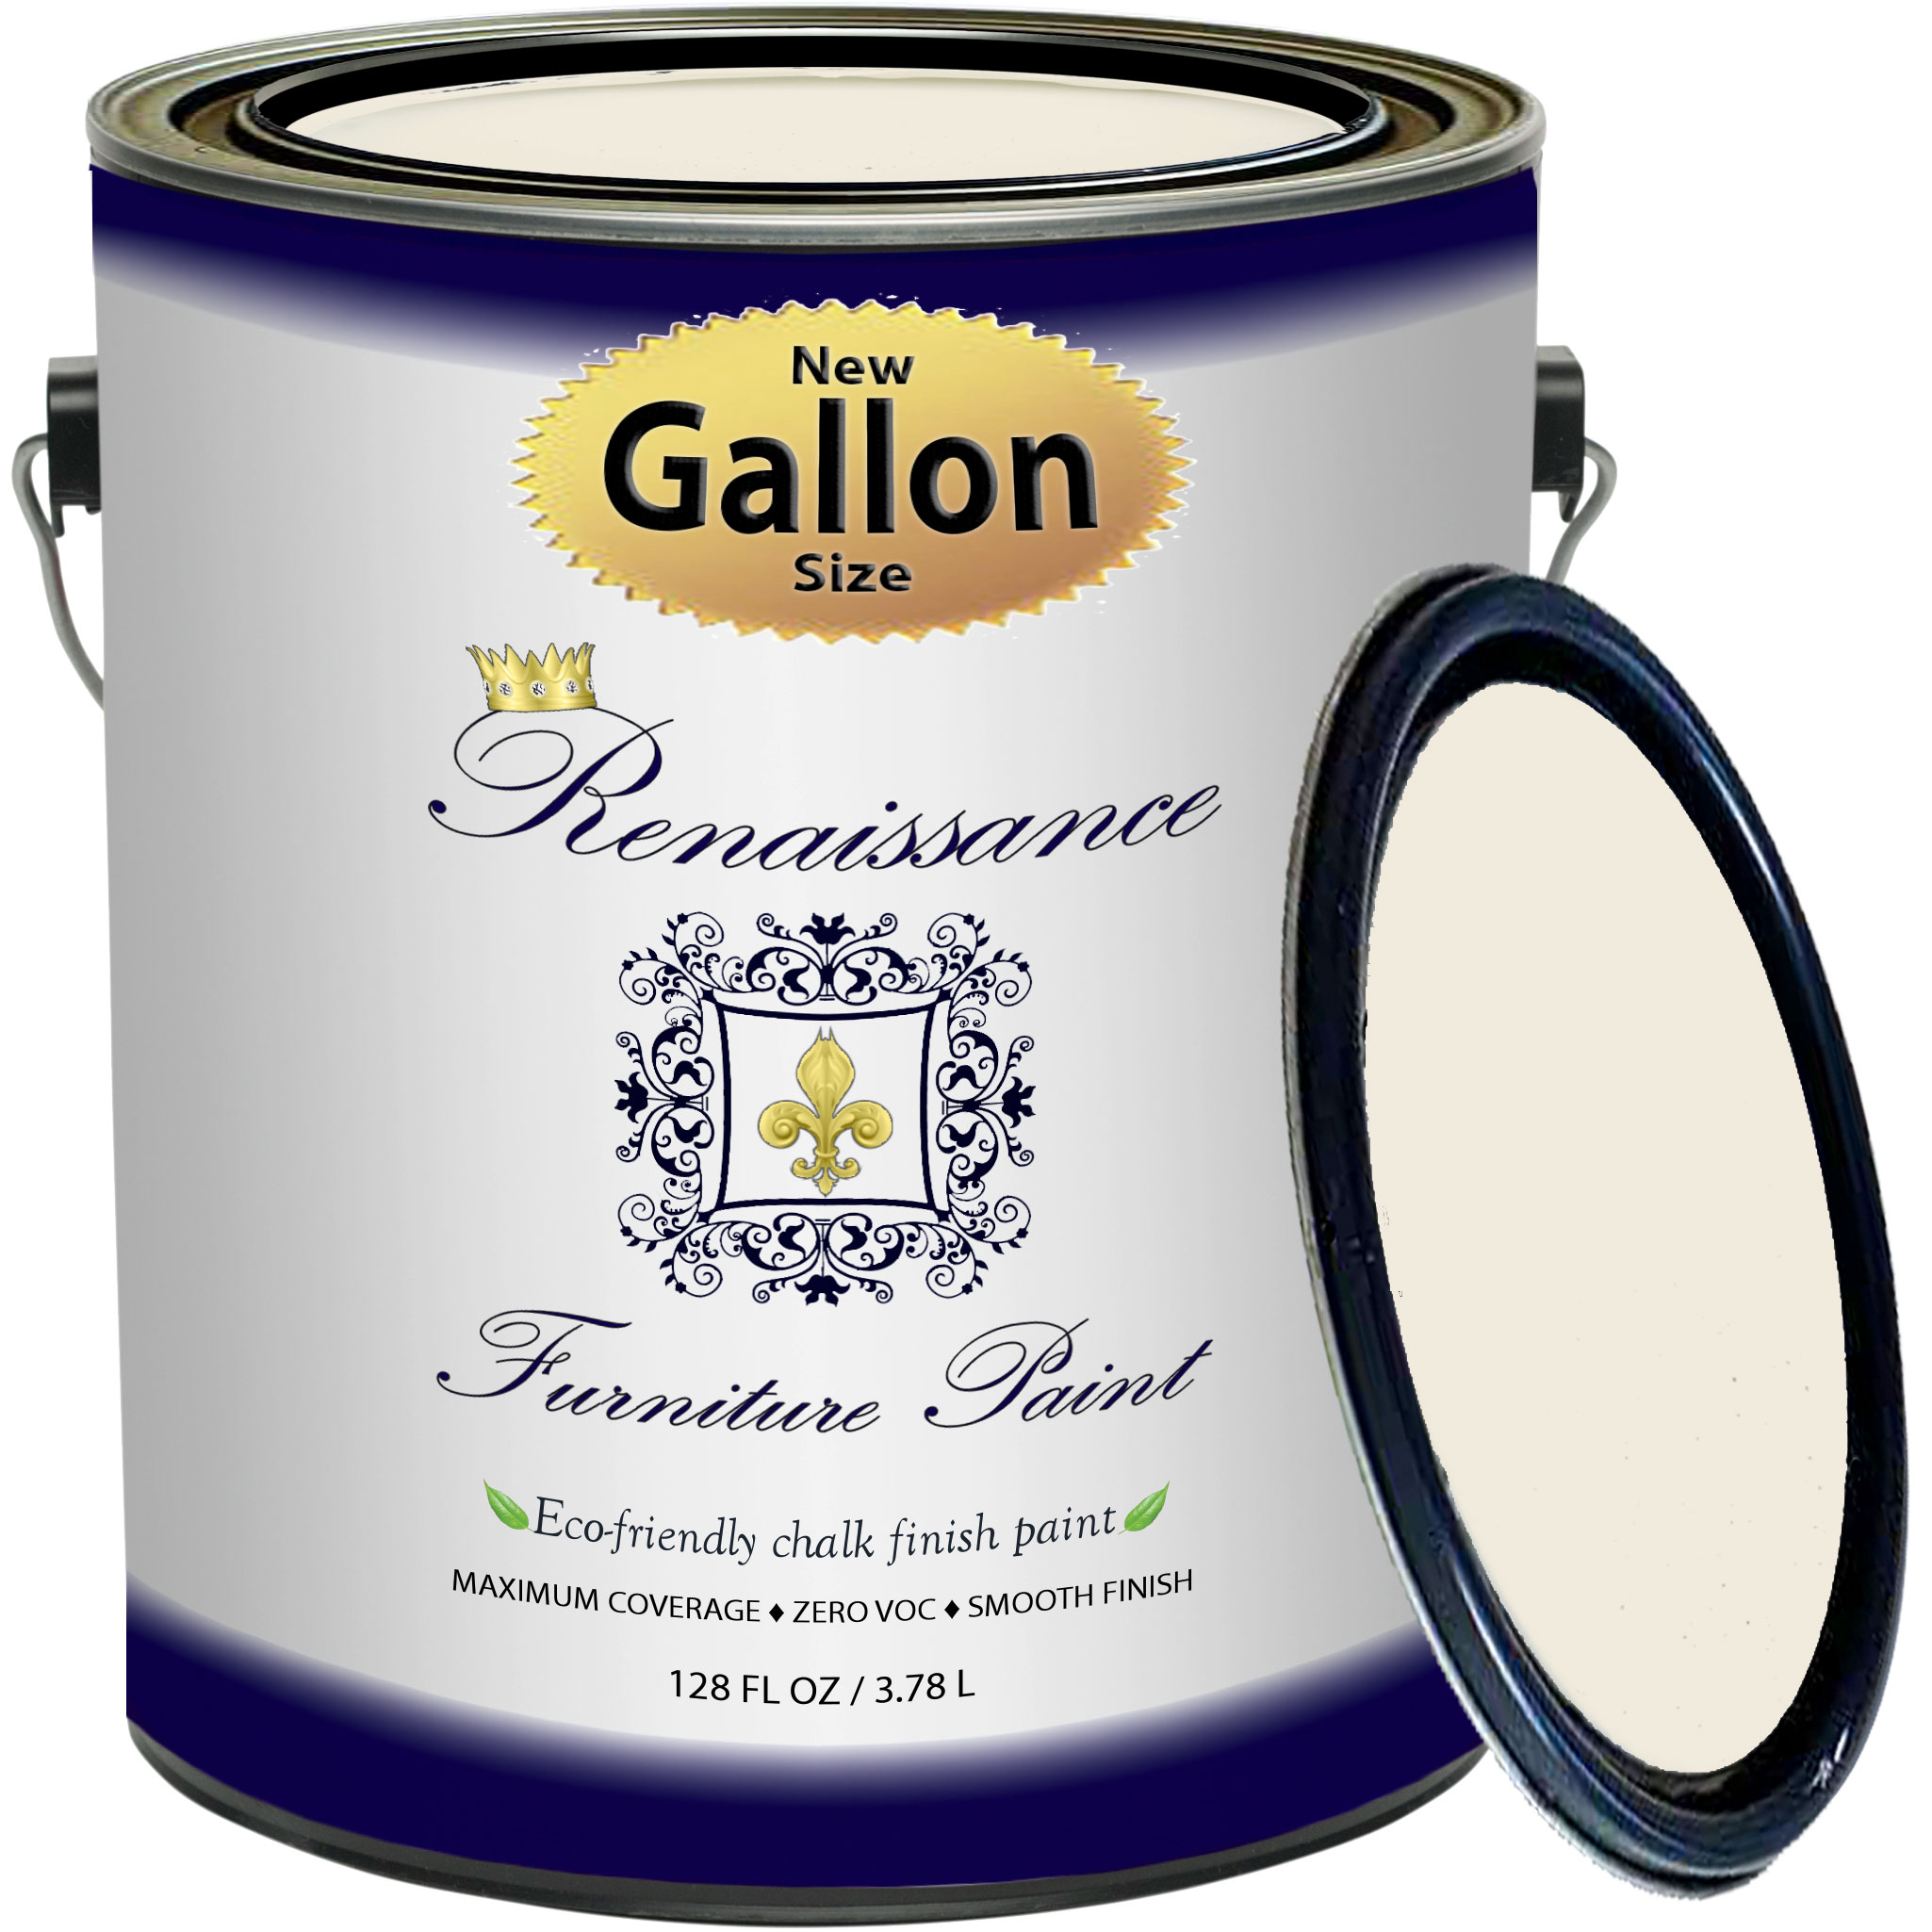 Renaissance Chalk Finish Paint - Ivory Tower Gallon (128oz) - Chalk Furniture & Cabinet Paint - Non Toxic, Eco-Friendly, Superior Coverage